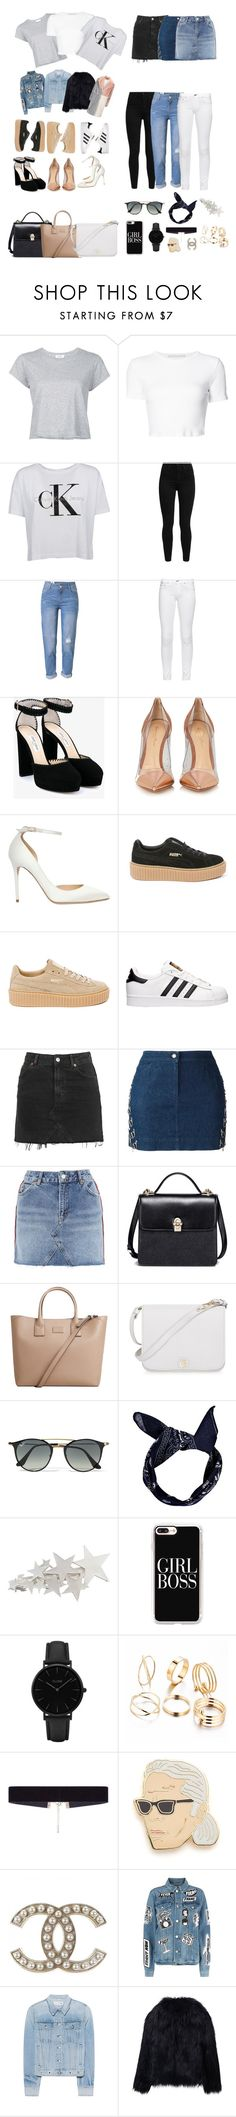 """""""Save the Basics"""" by finderskeeper ❤ liked on Polyvore featuring interior, interiors, interior design, home, home decor, interior decorating, RE/DONE, Rosetta Getty, Calvin Klein and Levi's"""